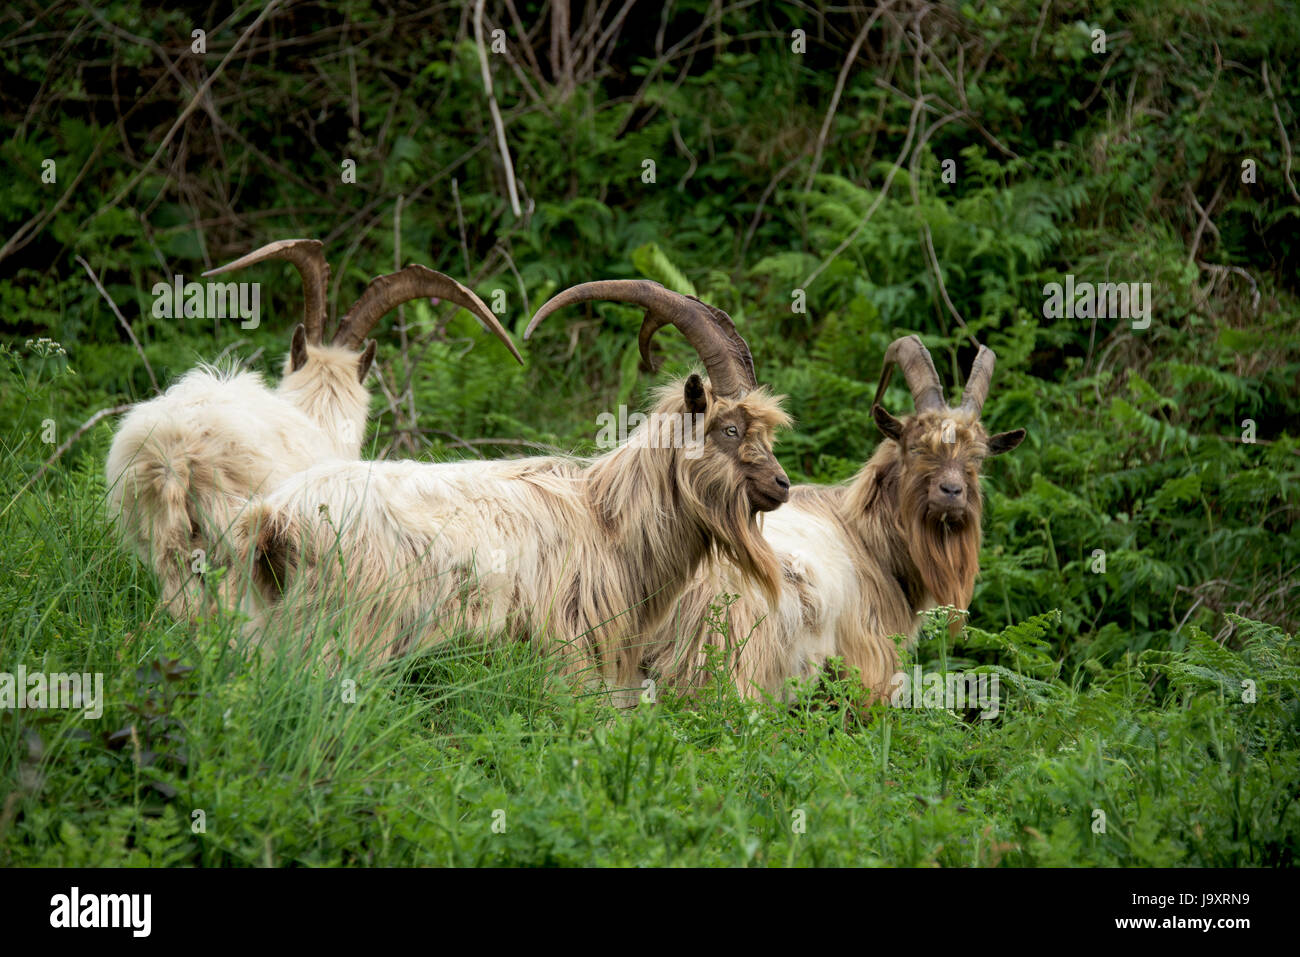 Herd of feral goats in North Wales Snowdonia region, UK - Stock Image